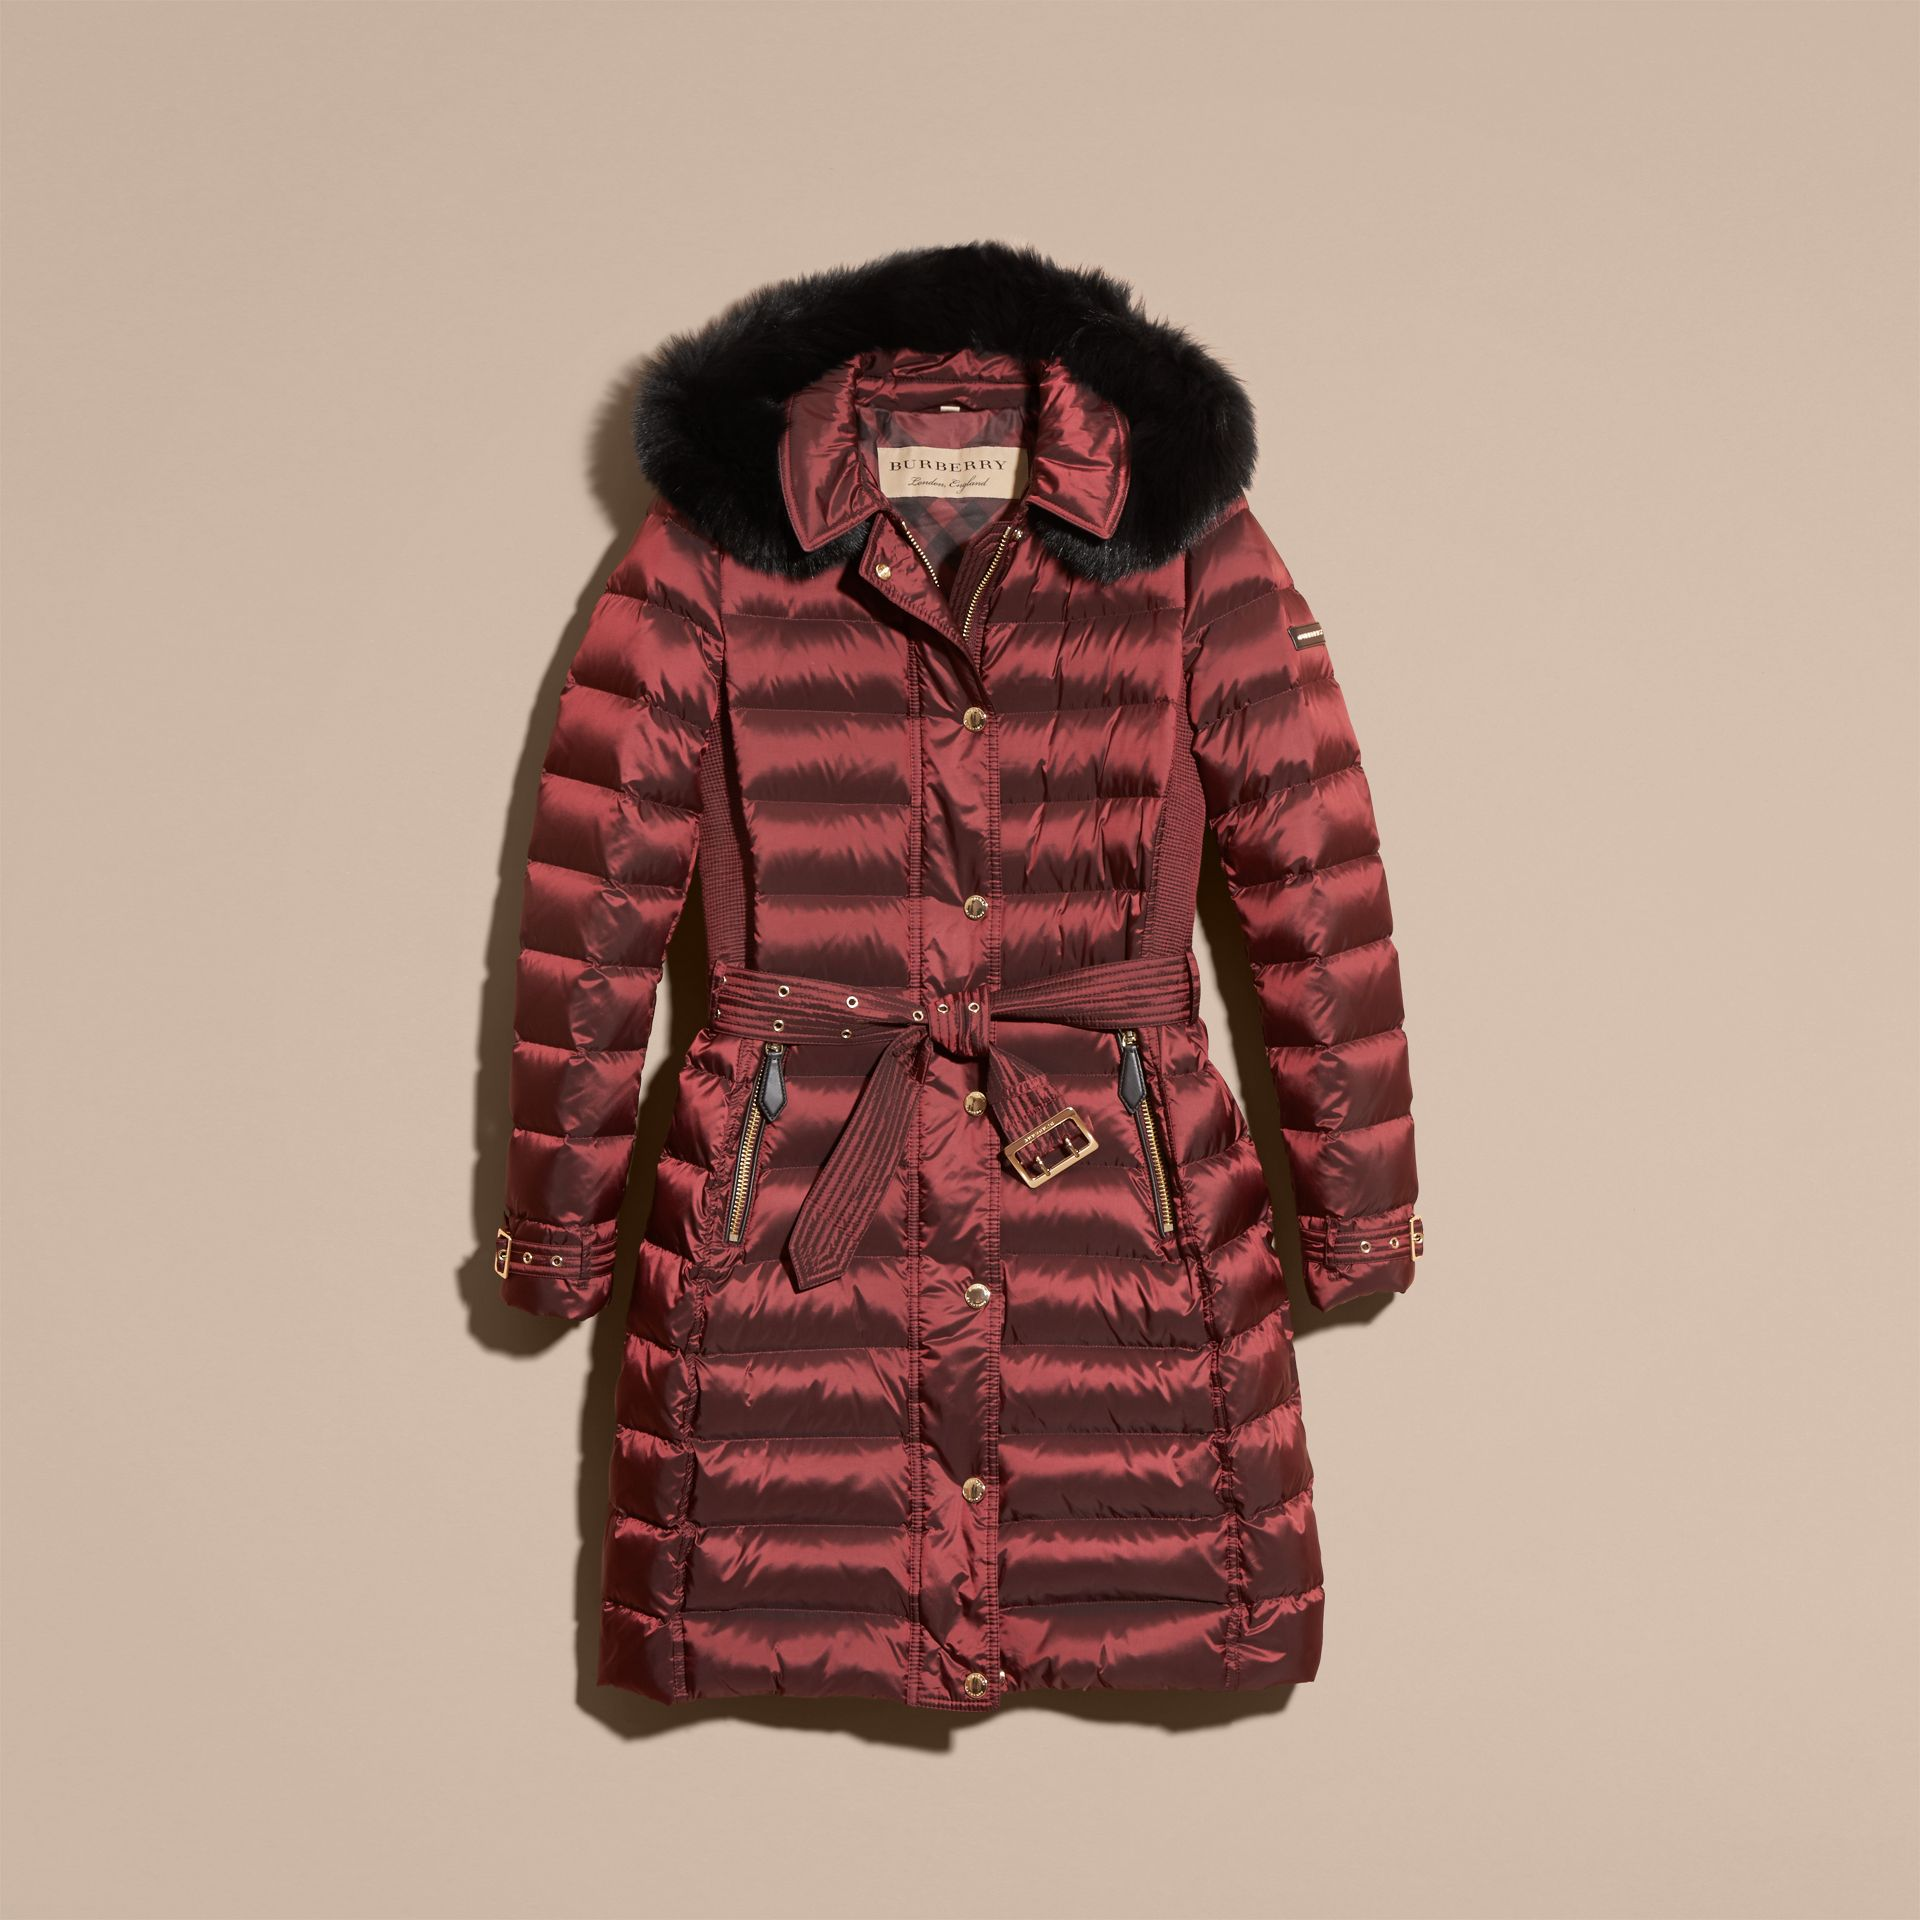 Down-filled Coat with Fox Fur Trim Hood in Burgundy - gallery image 4